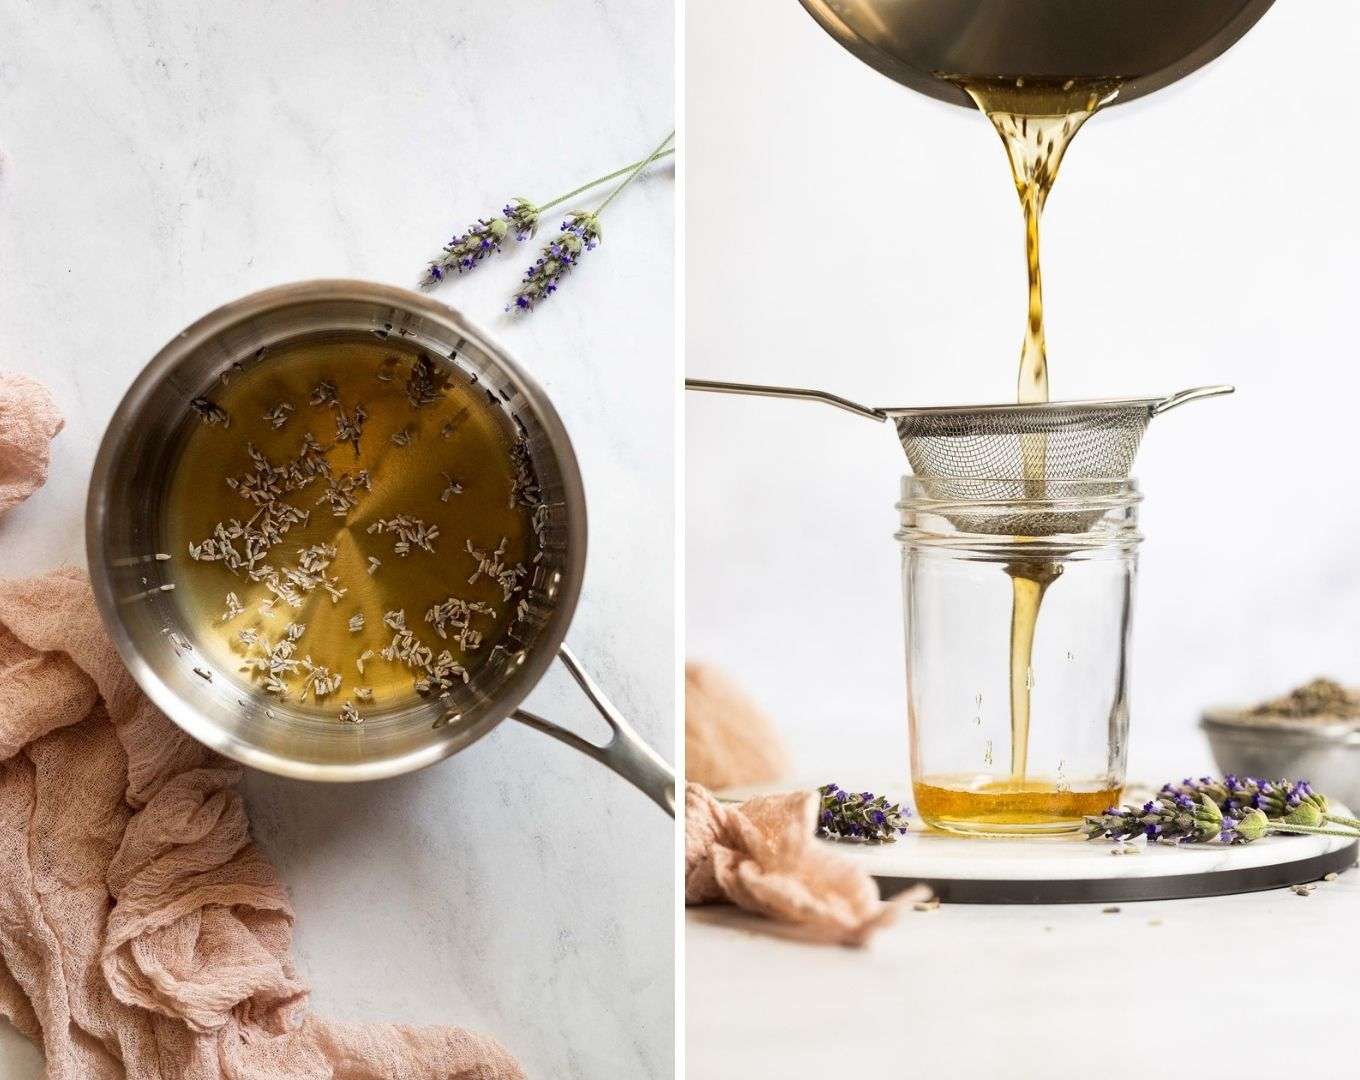 Honey lavender syrup in sauce pan and straining into jar.